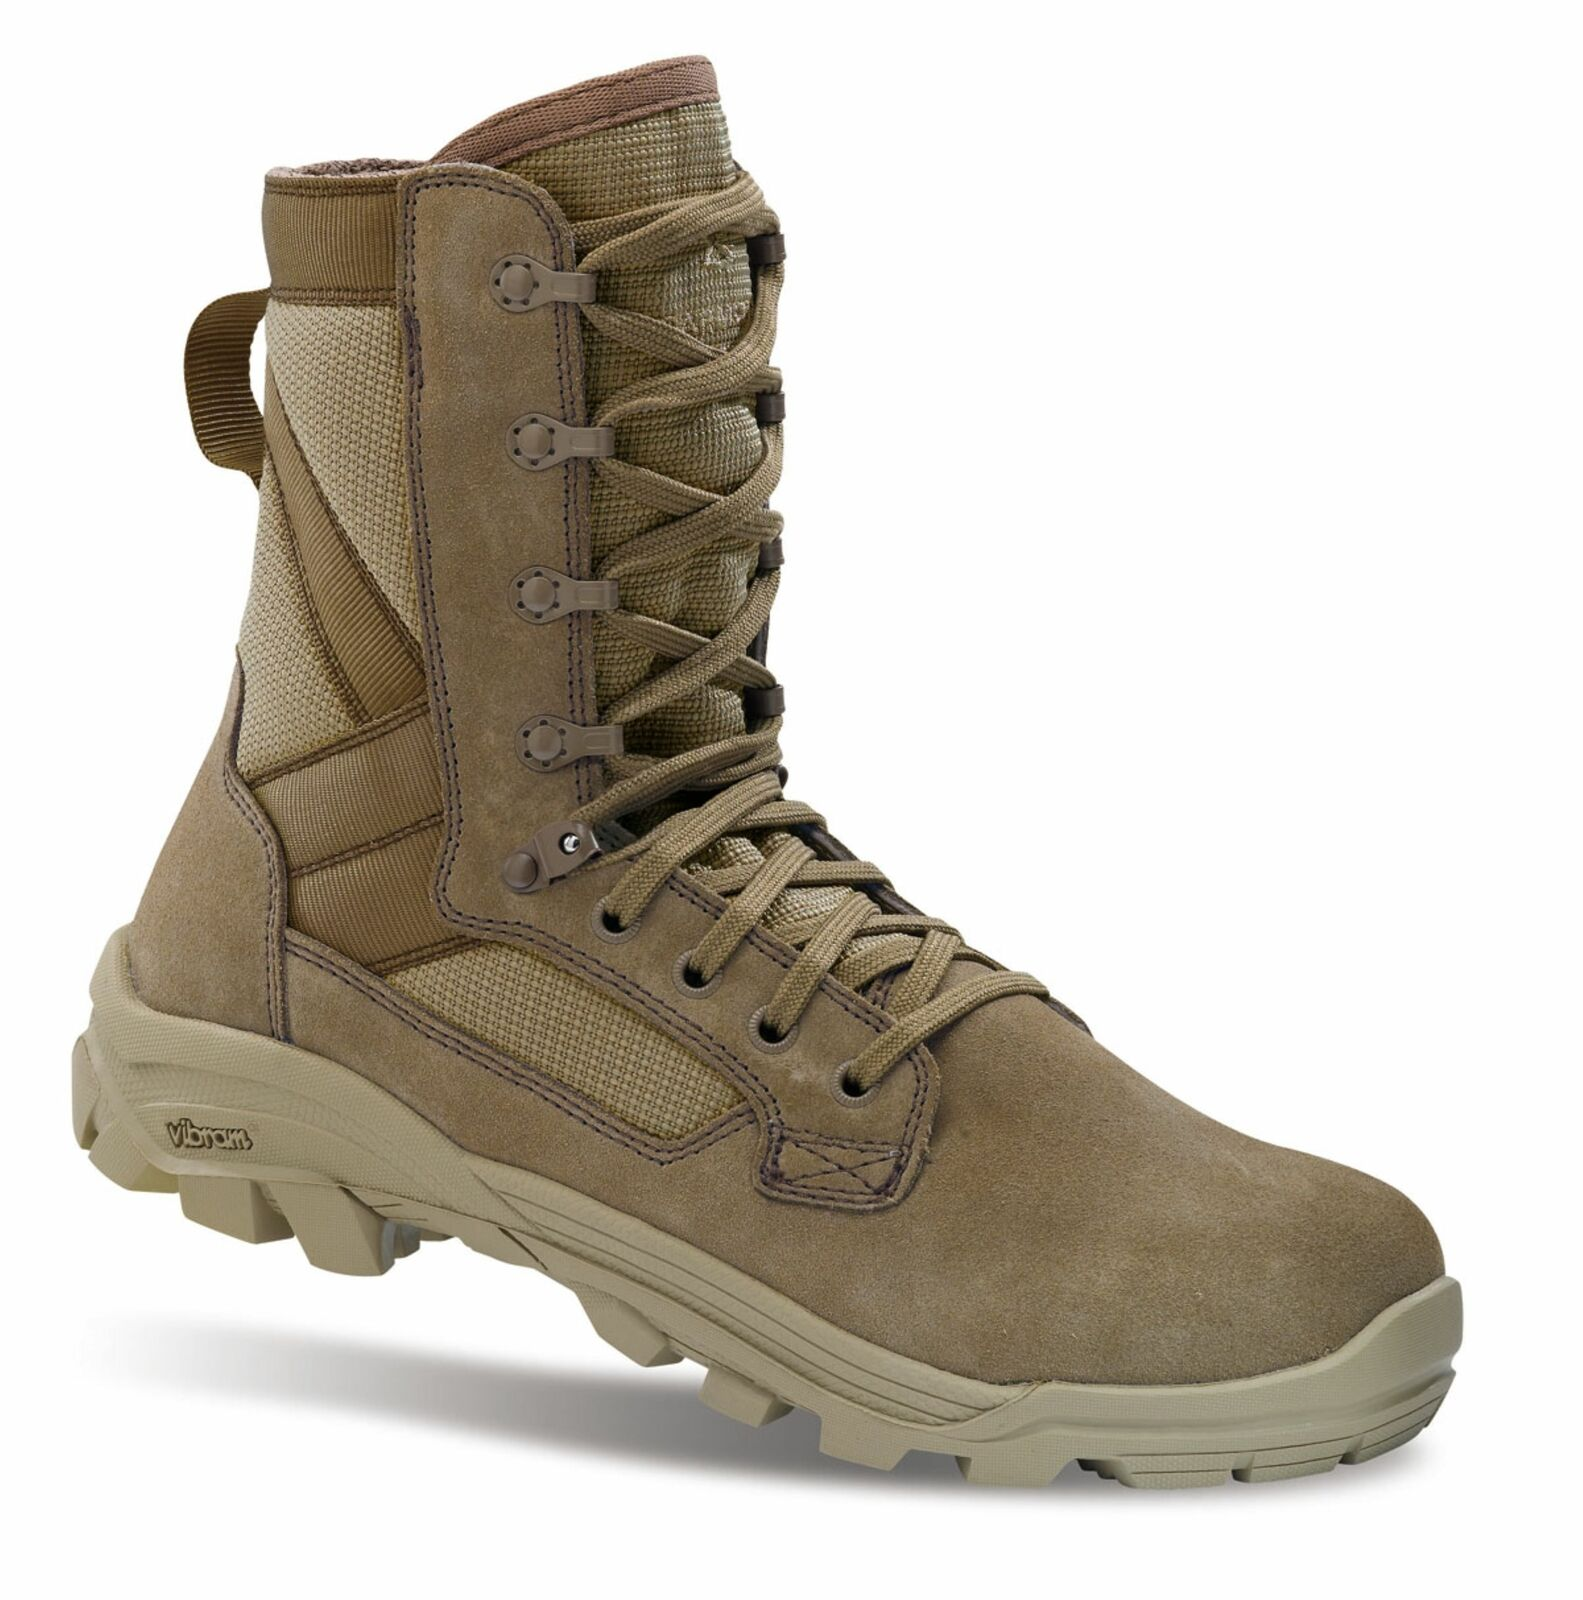 Garmont T8 Extreme Cold Weather Stiefel, Coyote Tan